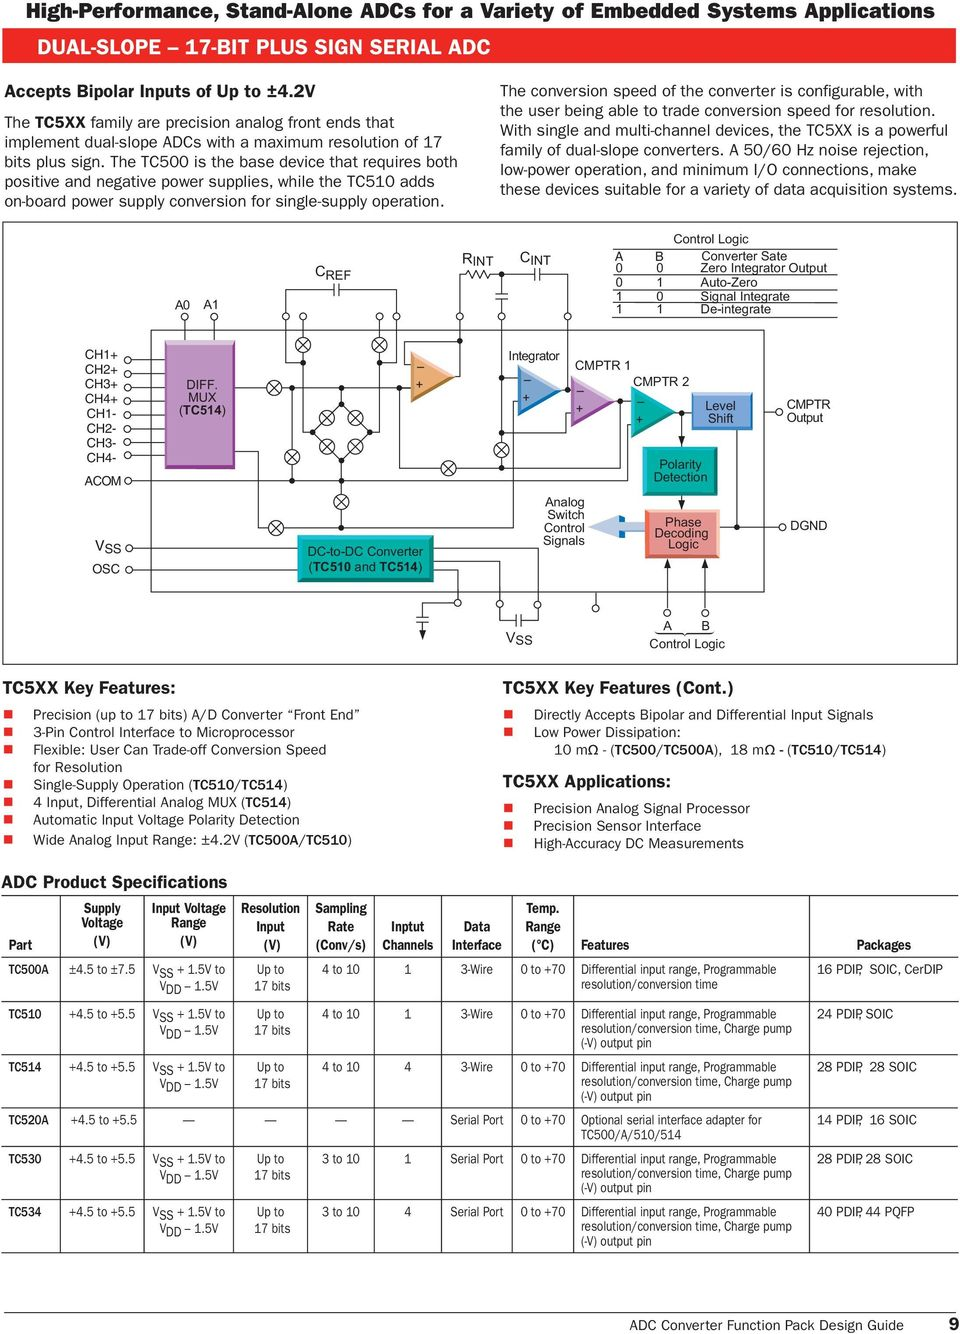 Analog To Digital Converter Design Guide Pdf Icl7135 Typical Application Schematic Diagram And Datasheet The Conversion Speed Of Is Configurable With User Being Able Trade